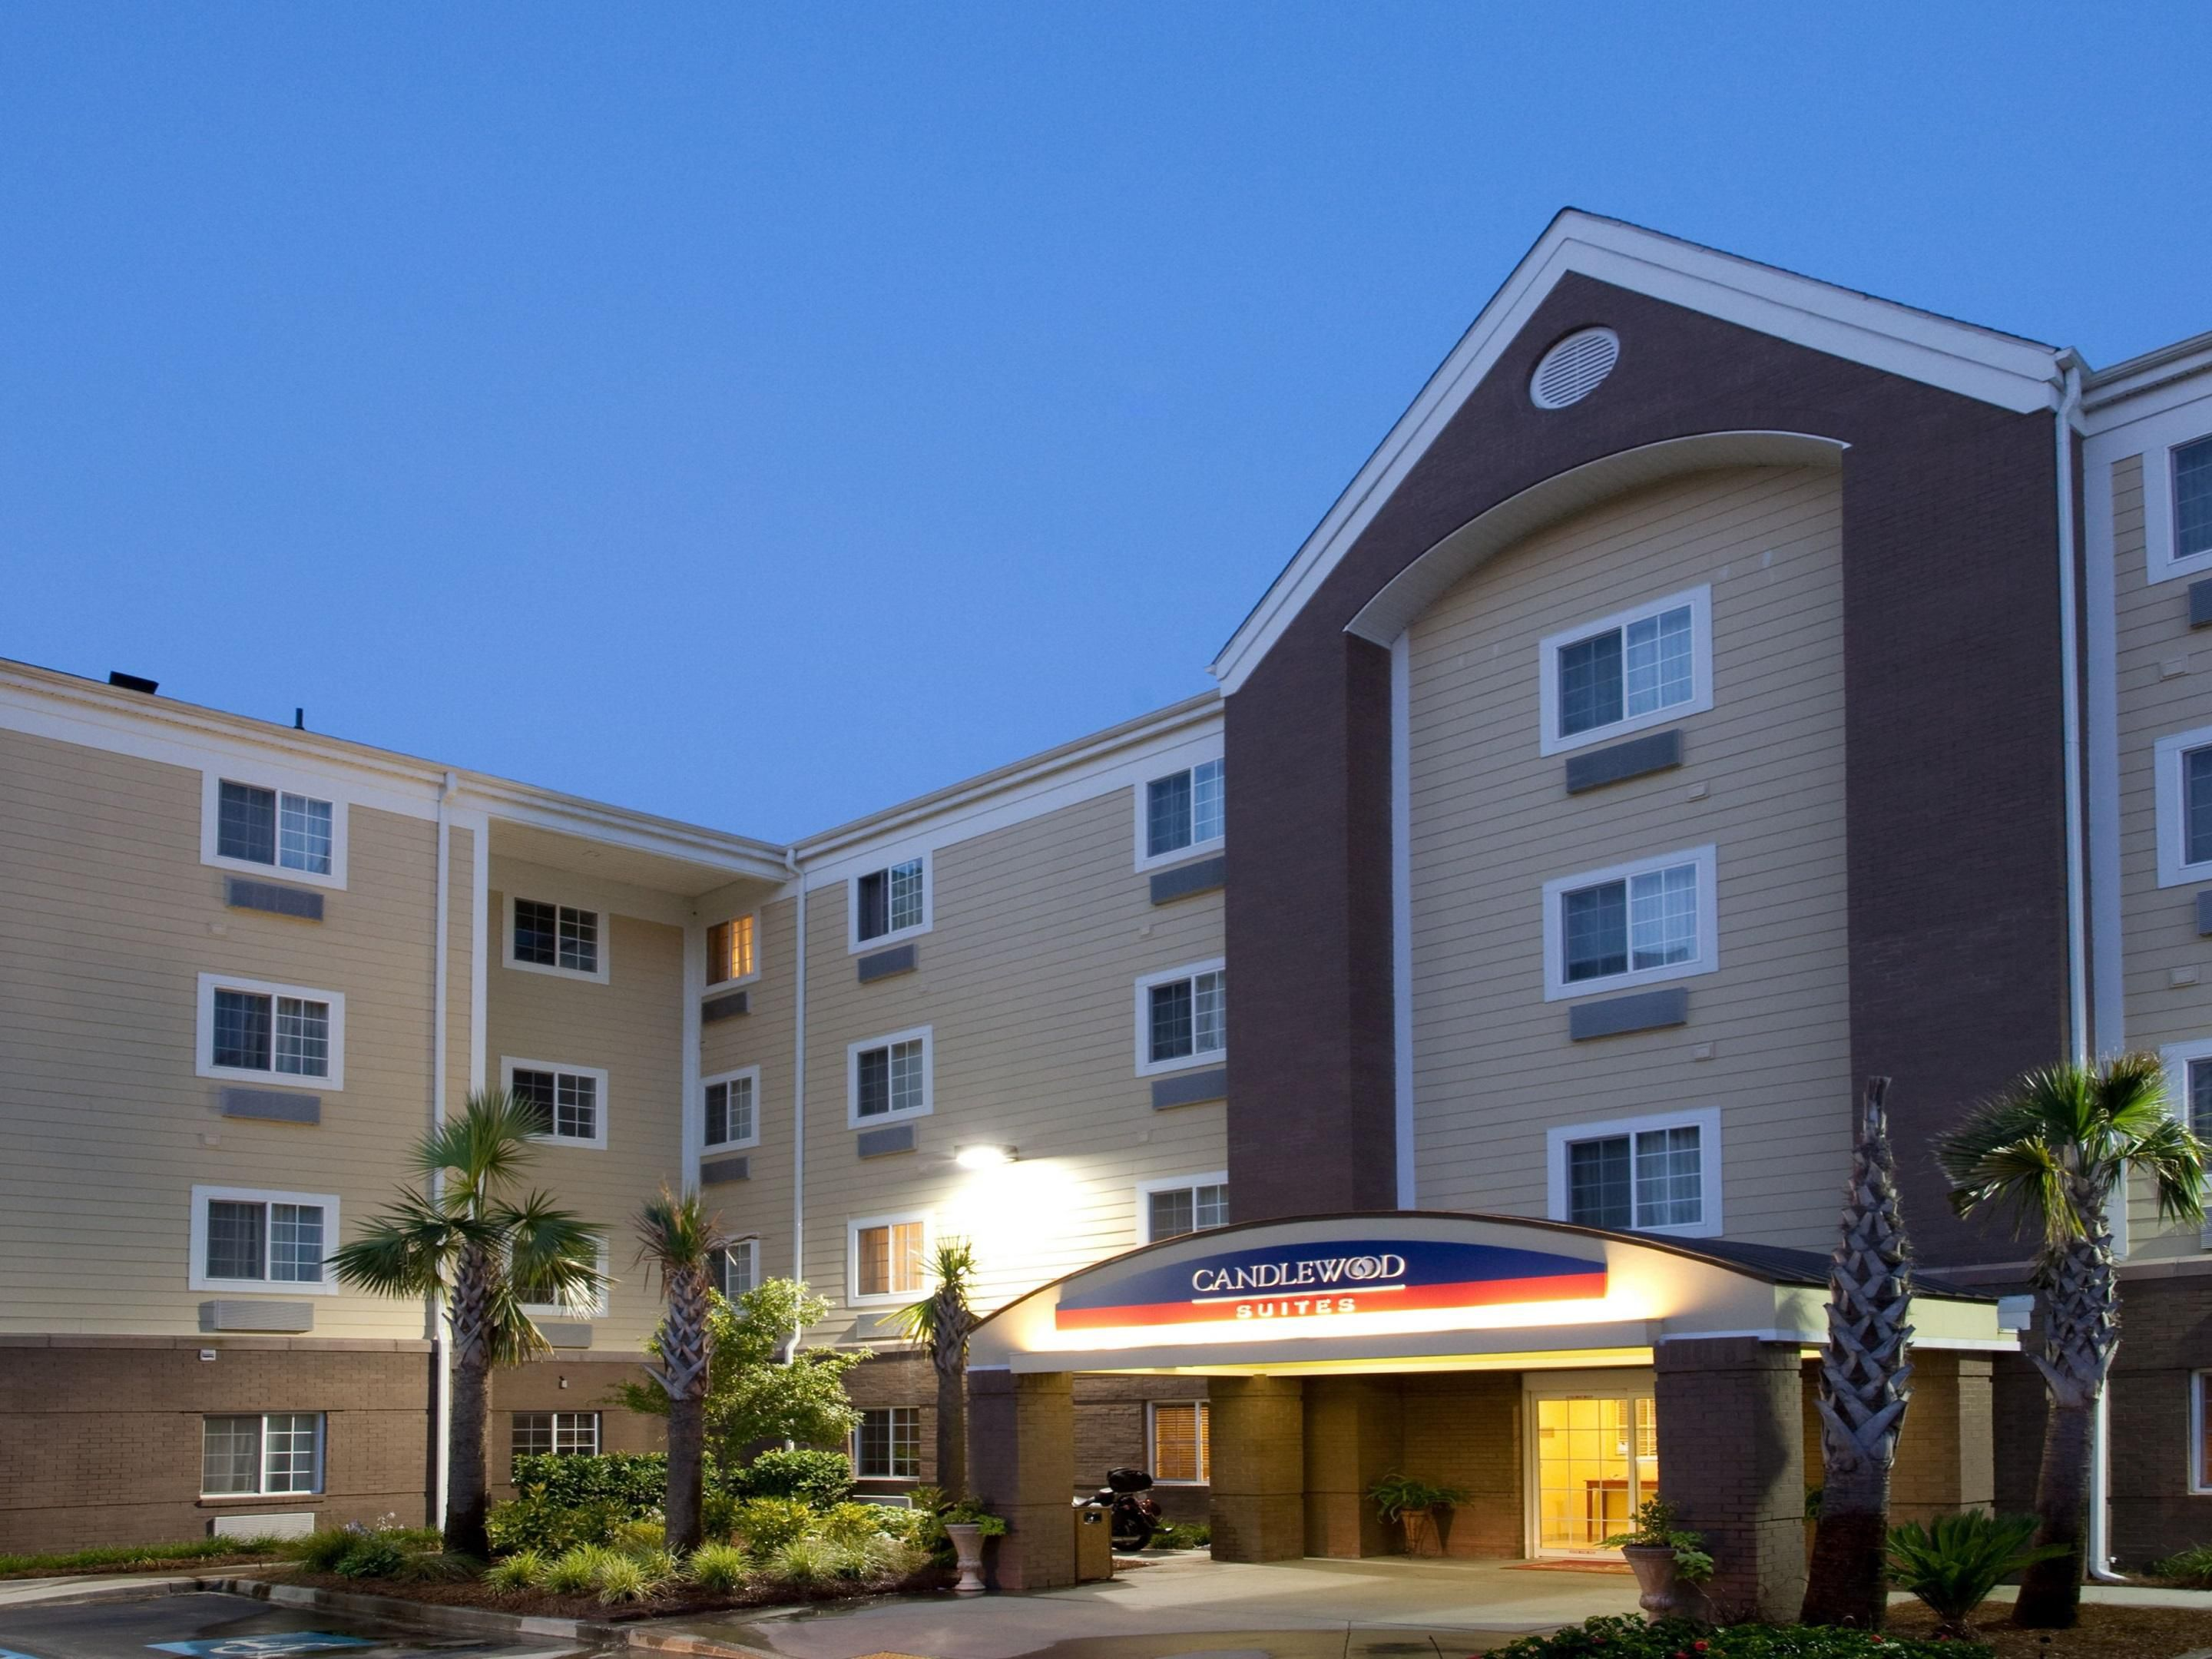 North Charleston Hotel In Candlewood Suites South